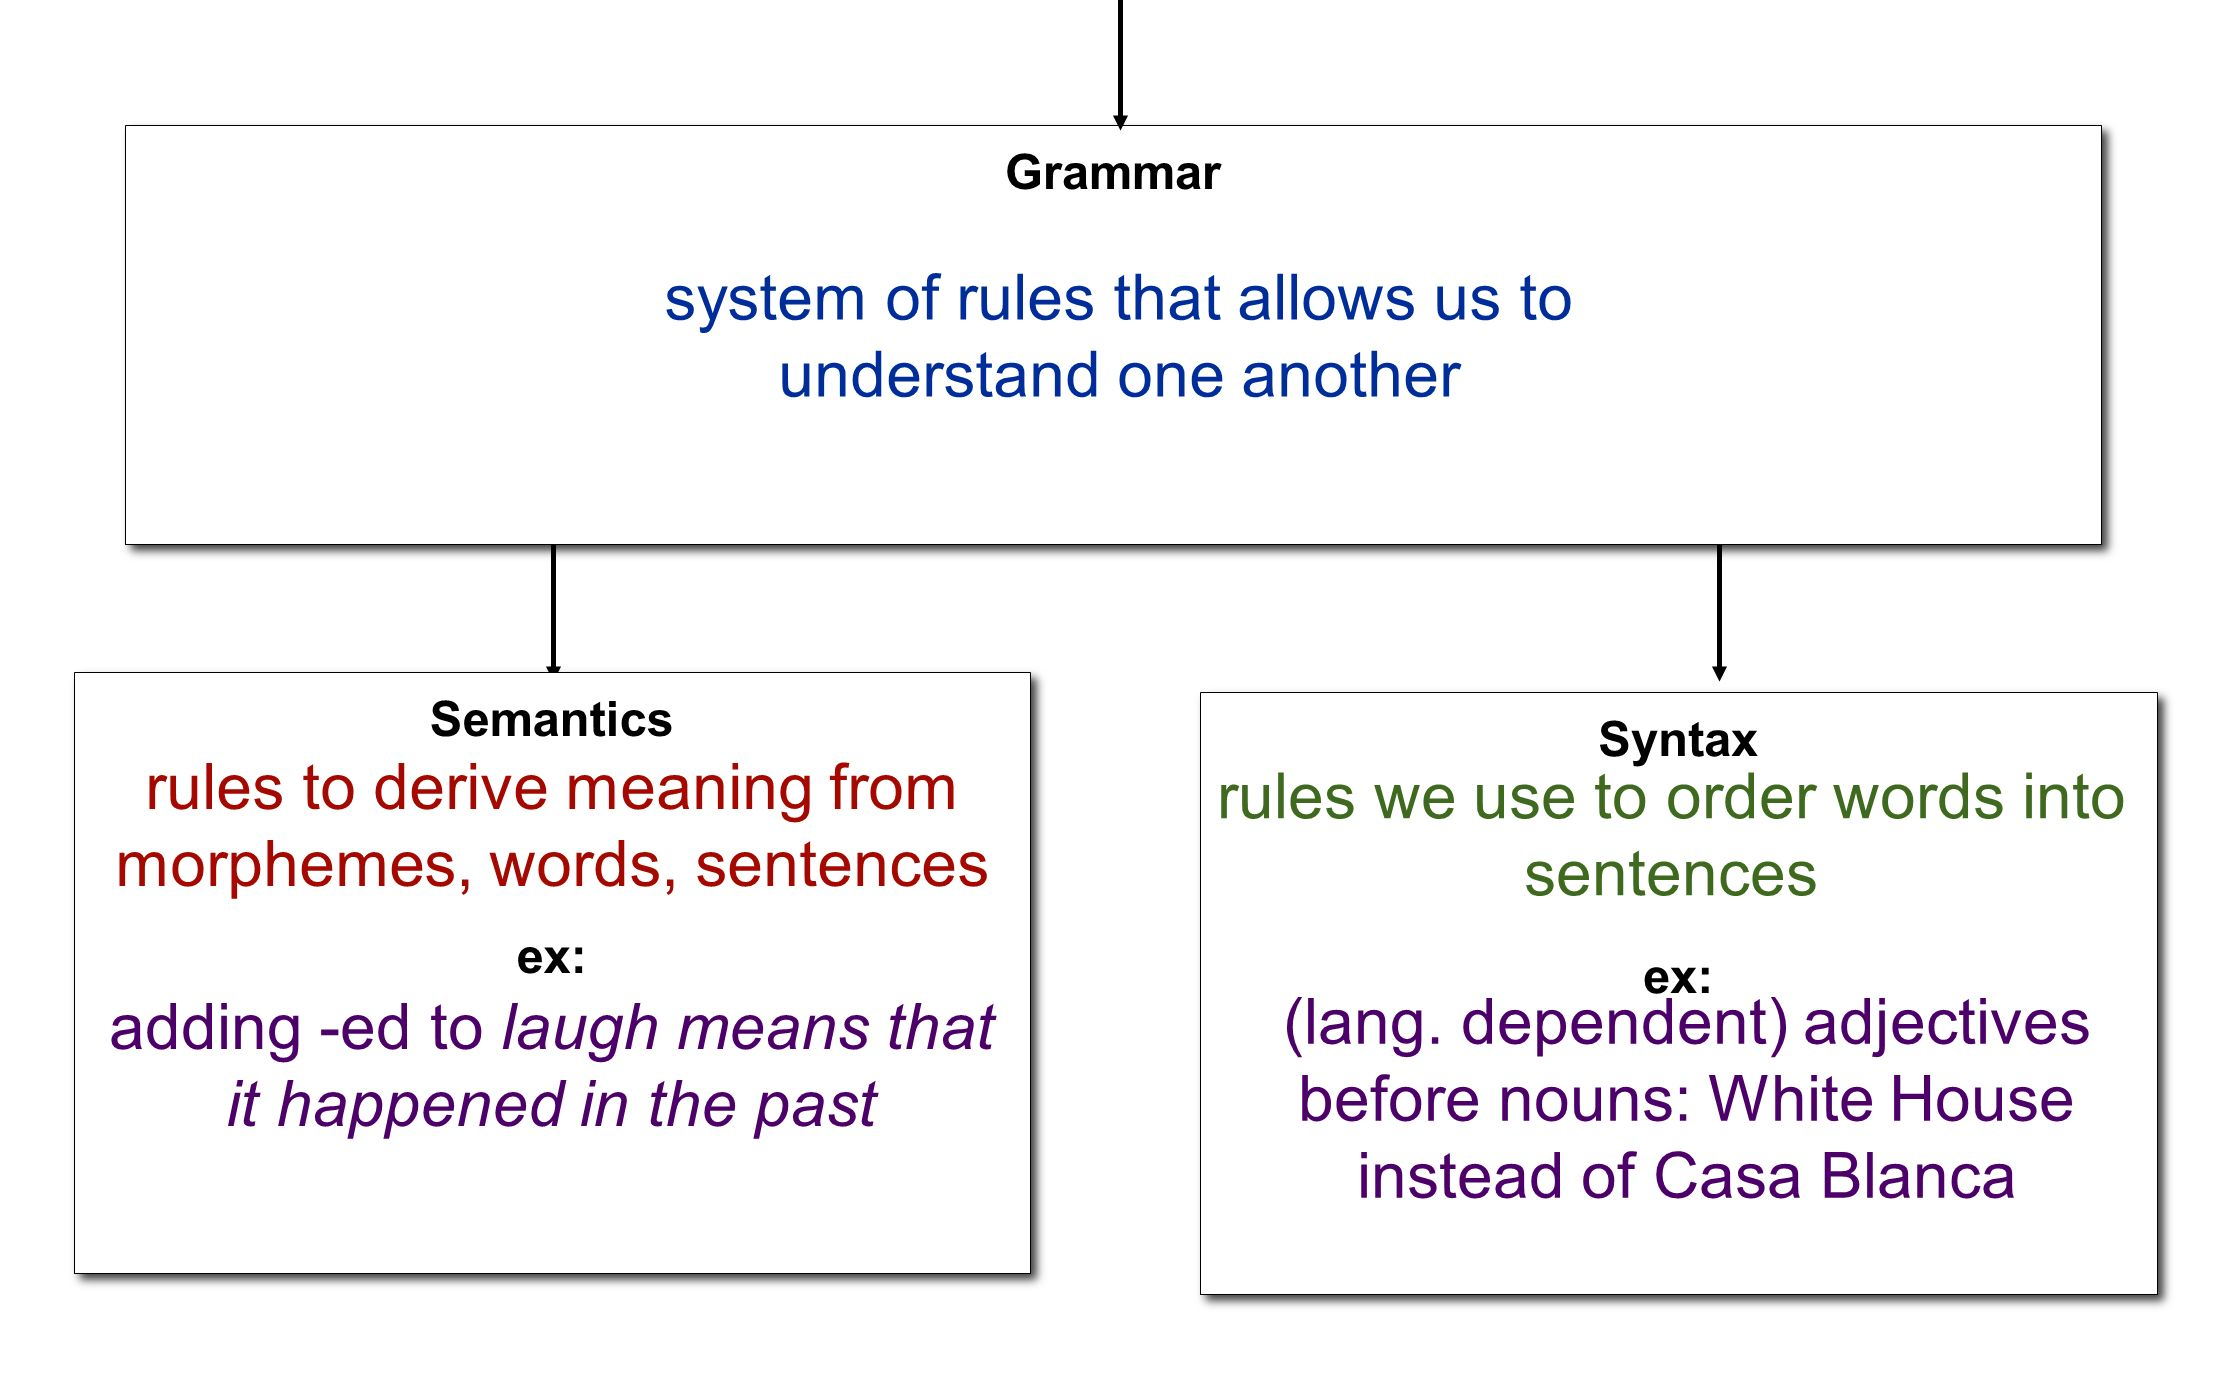 system of rules that allows us to understand one another